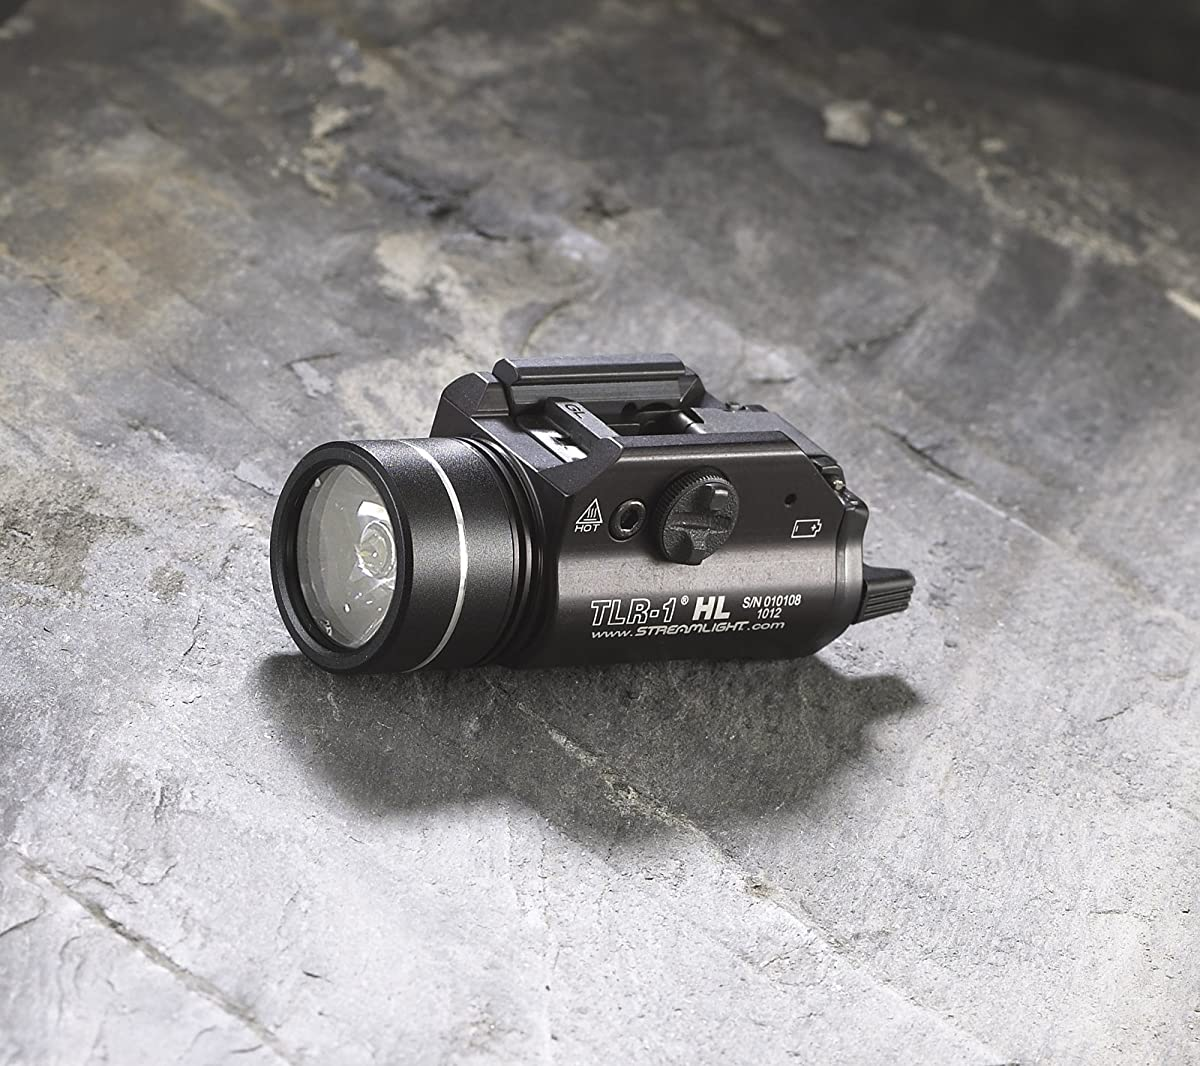 Streamlight 69260 TLR-1 HL Weapon Mount Tactical Flashlight Light 800 Lumens with Strobe